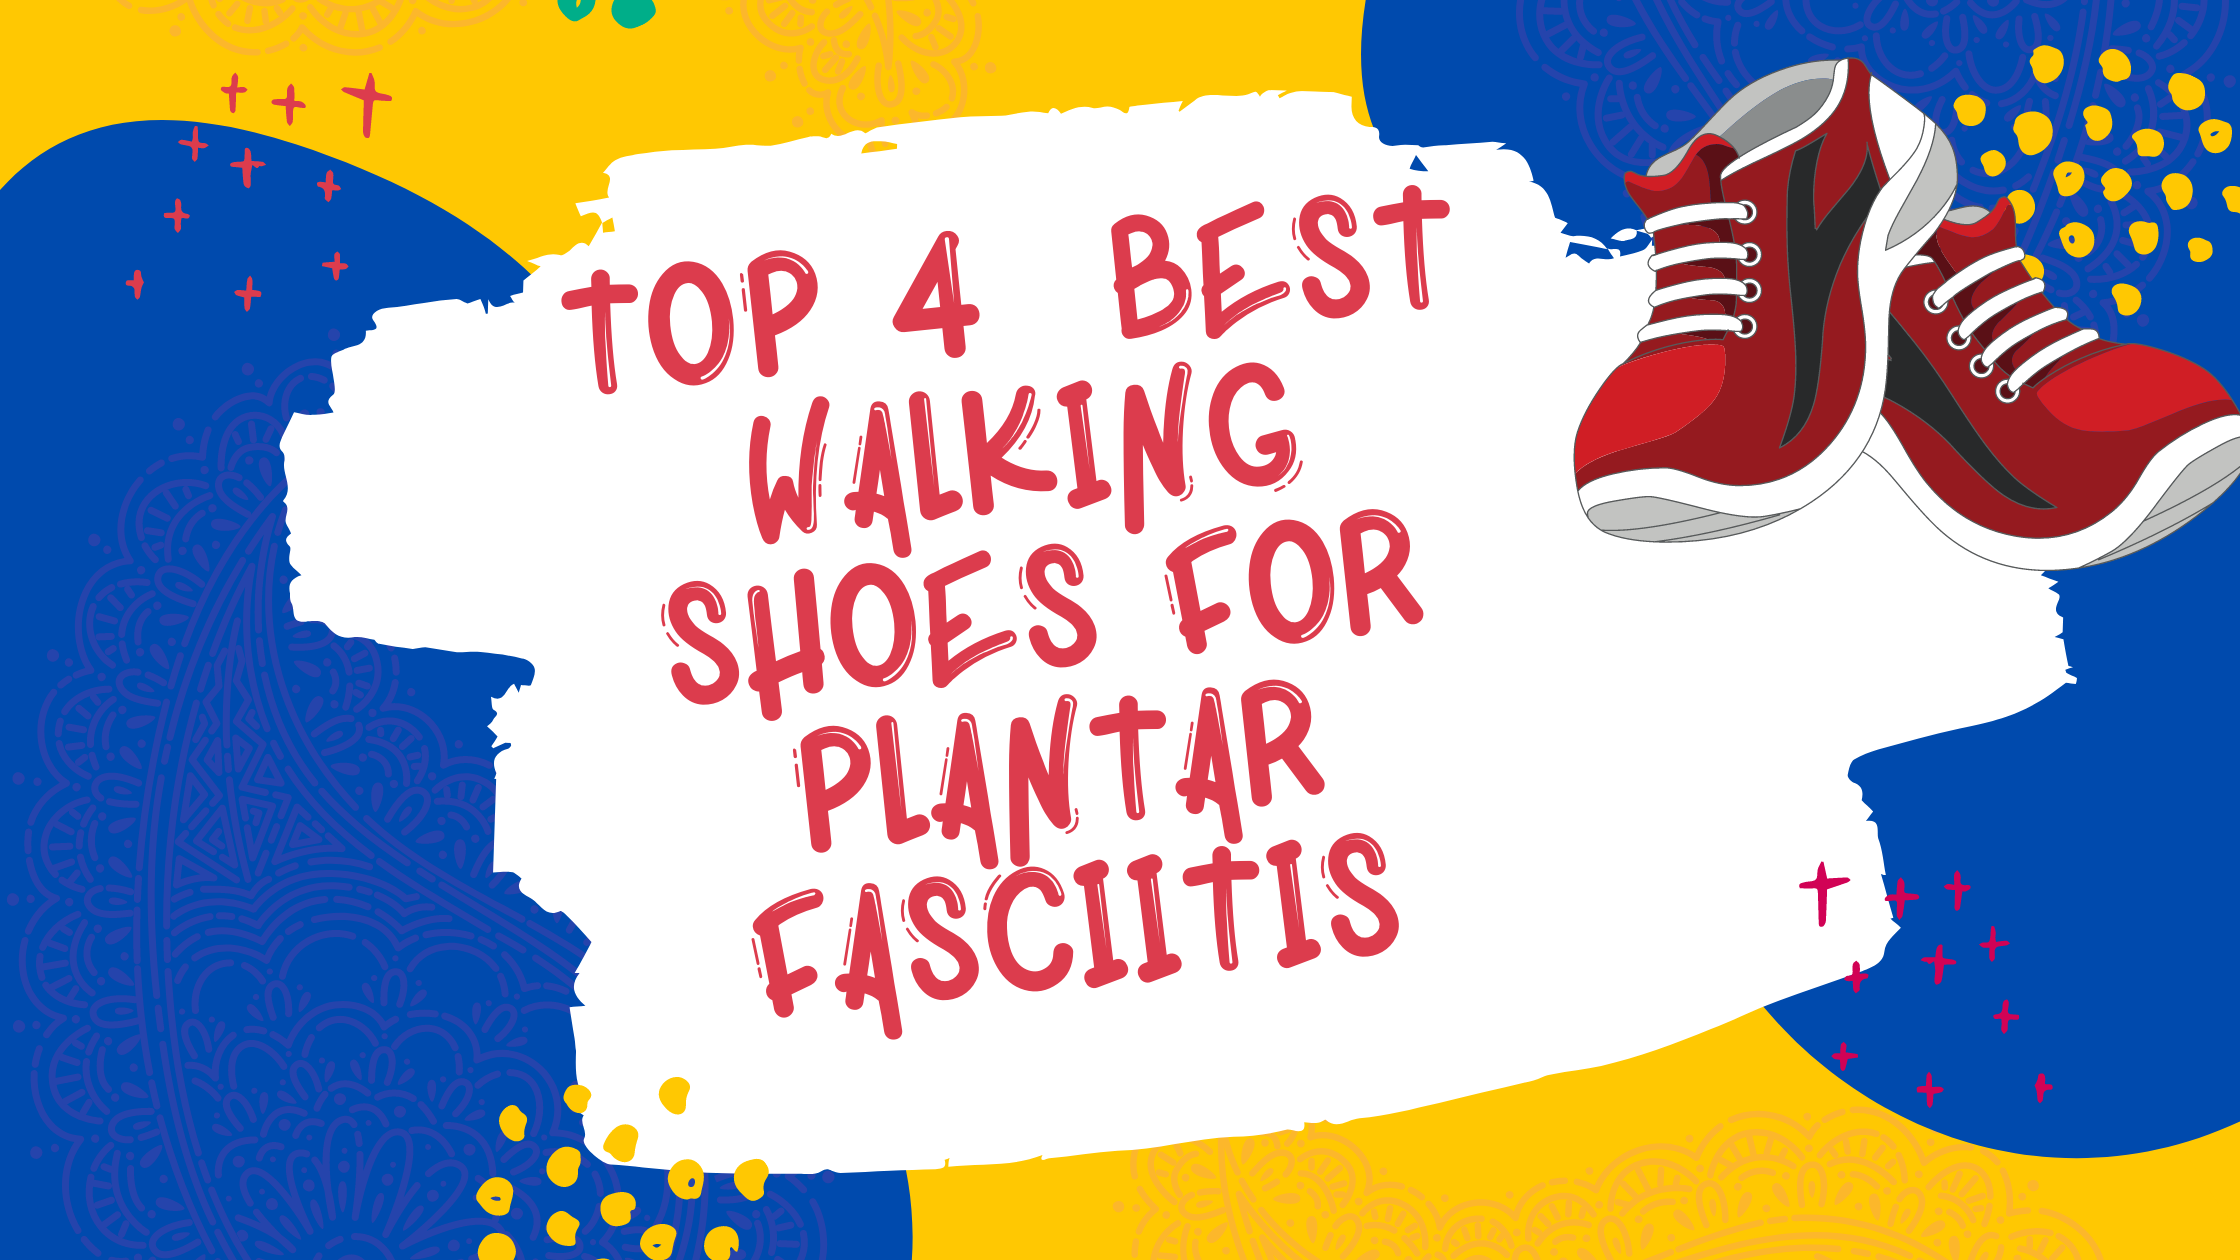 Best Walking Shoes for Plantar Fasciitis In 2021